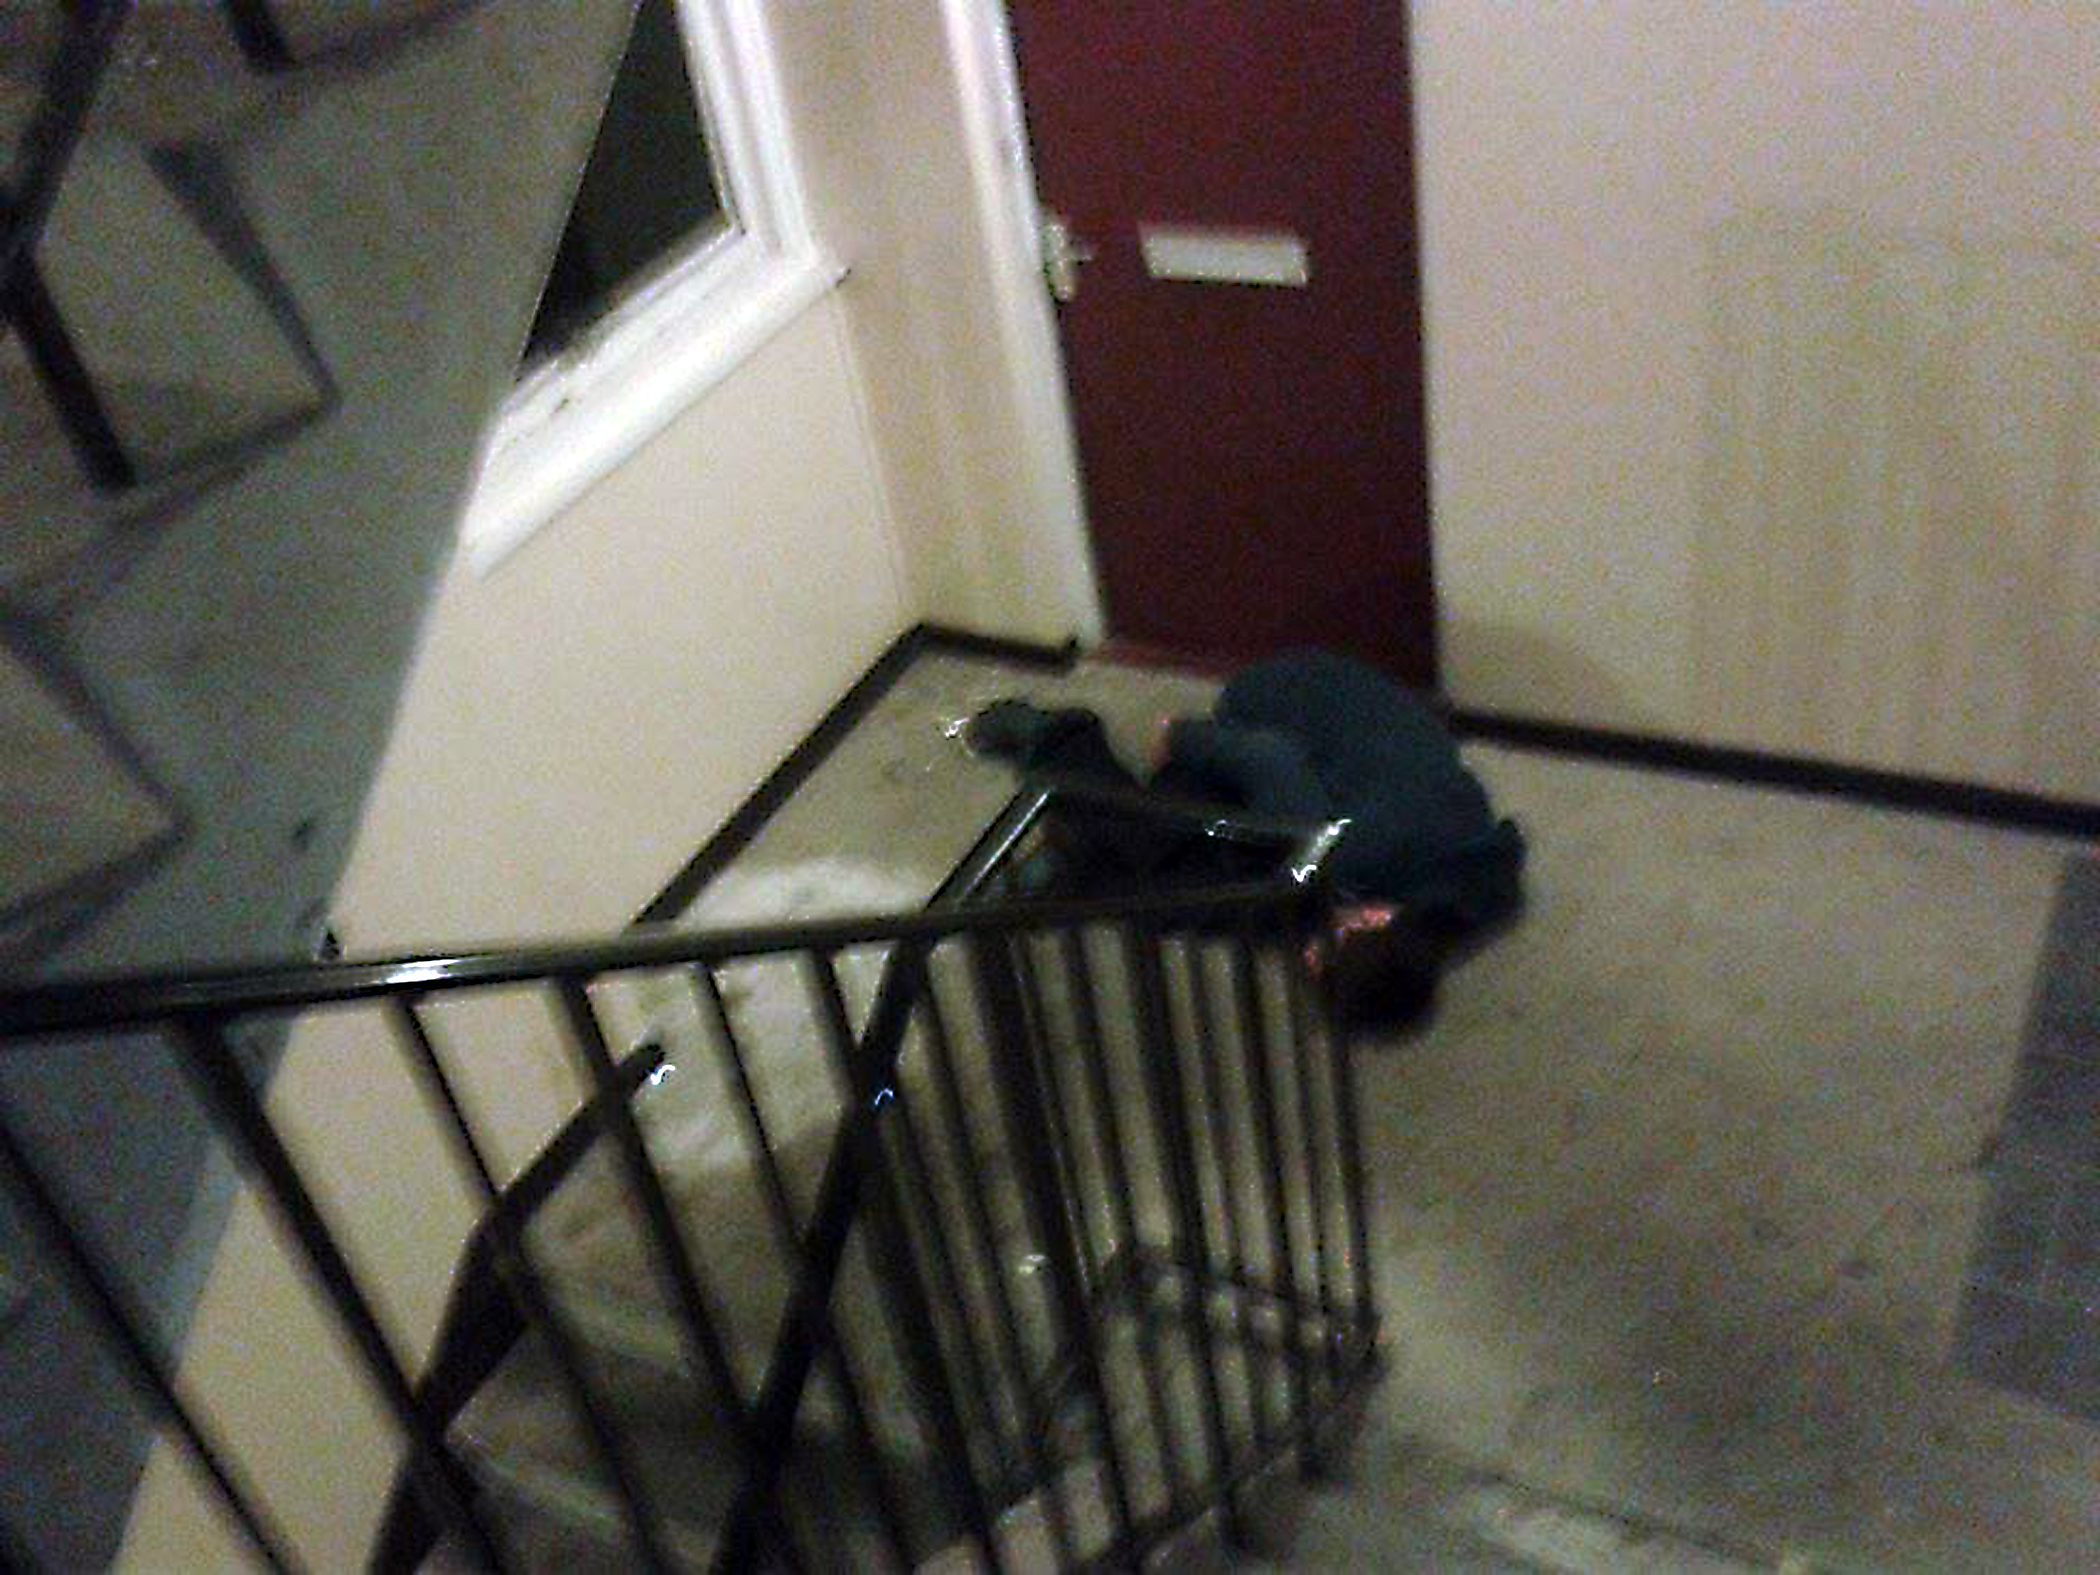 The addict passed out on the stairs.